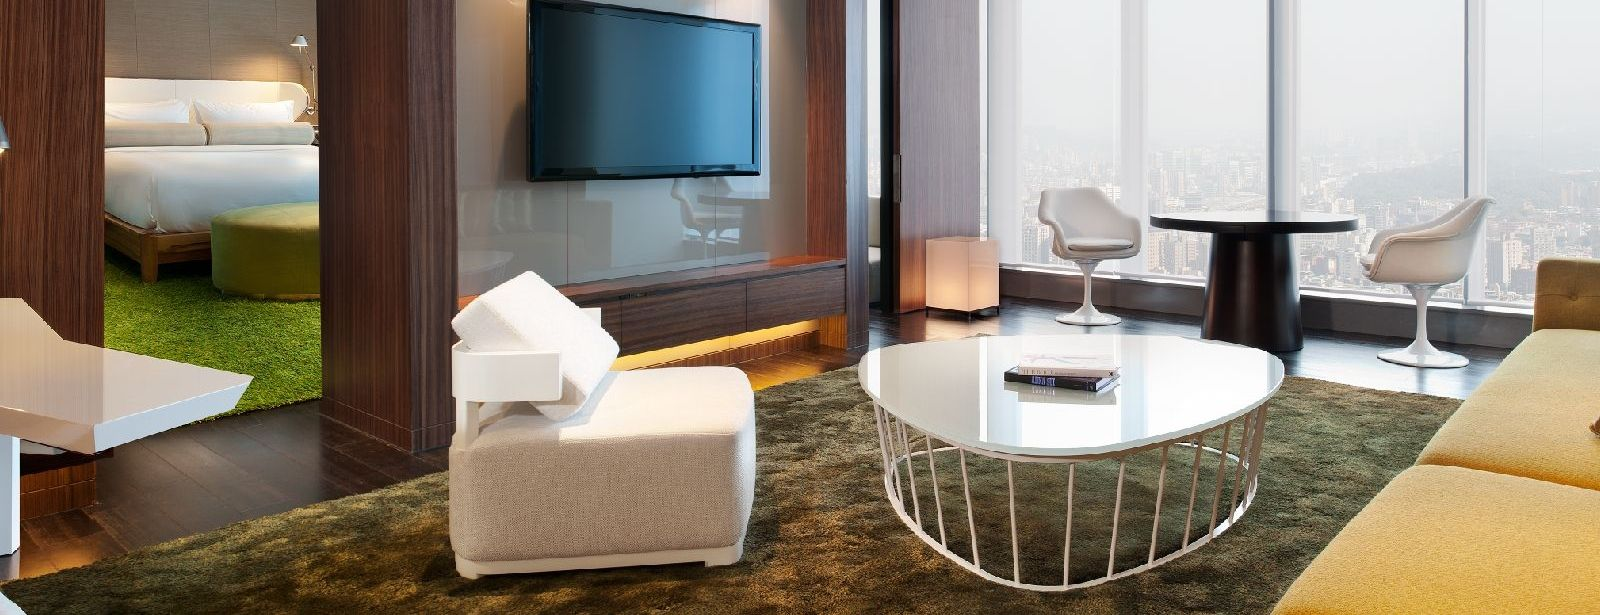 oversized chair and ottoman set coleman comfortsmart w hotels taipei: taipei | 5 star luxury hotel in marvelous suite